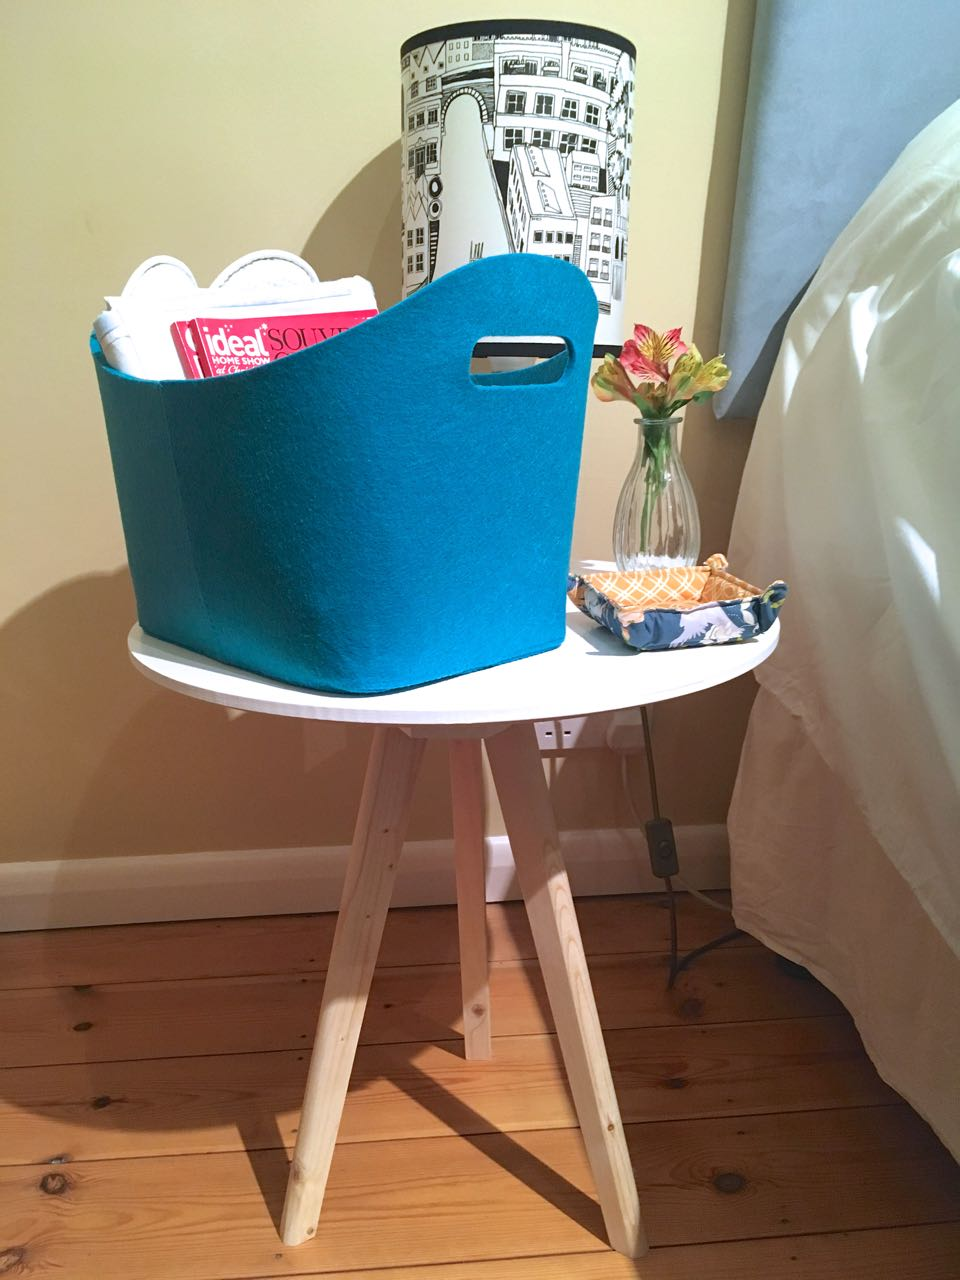 A simple side table as a bedside table complete with a zeller basket from wayfair full of goodies for my guests